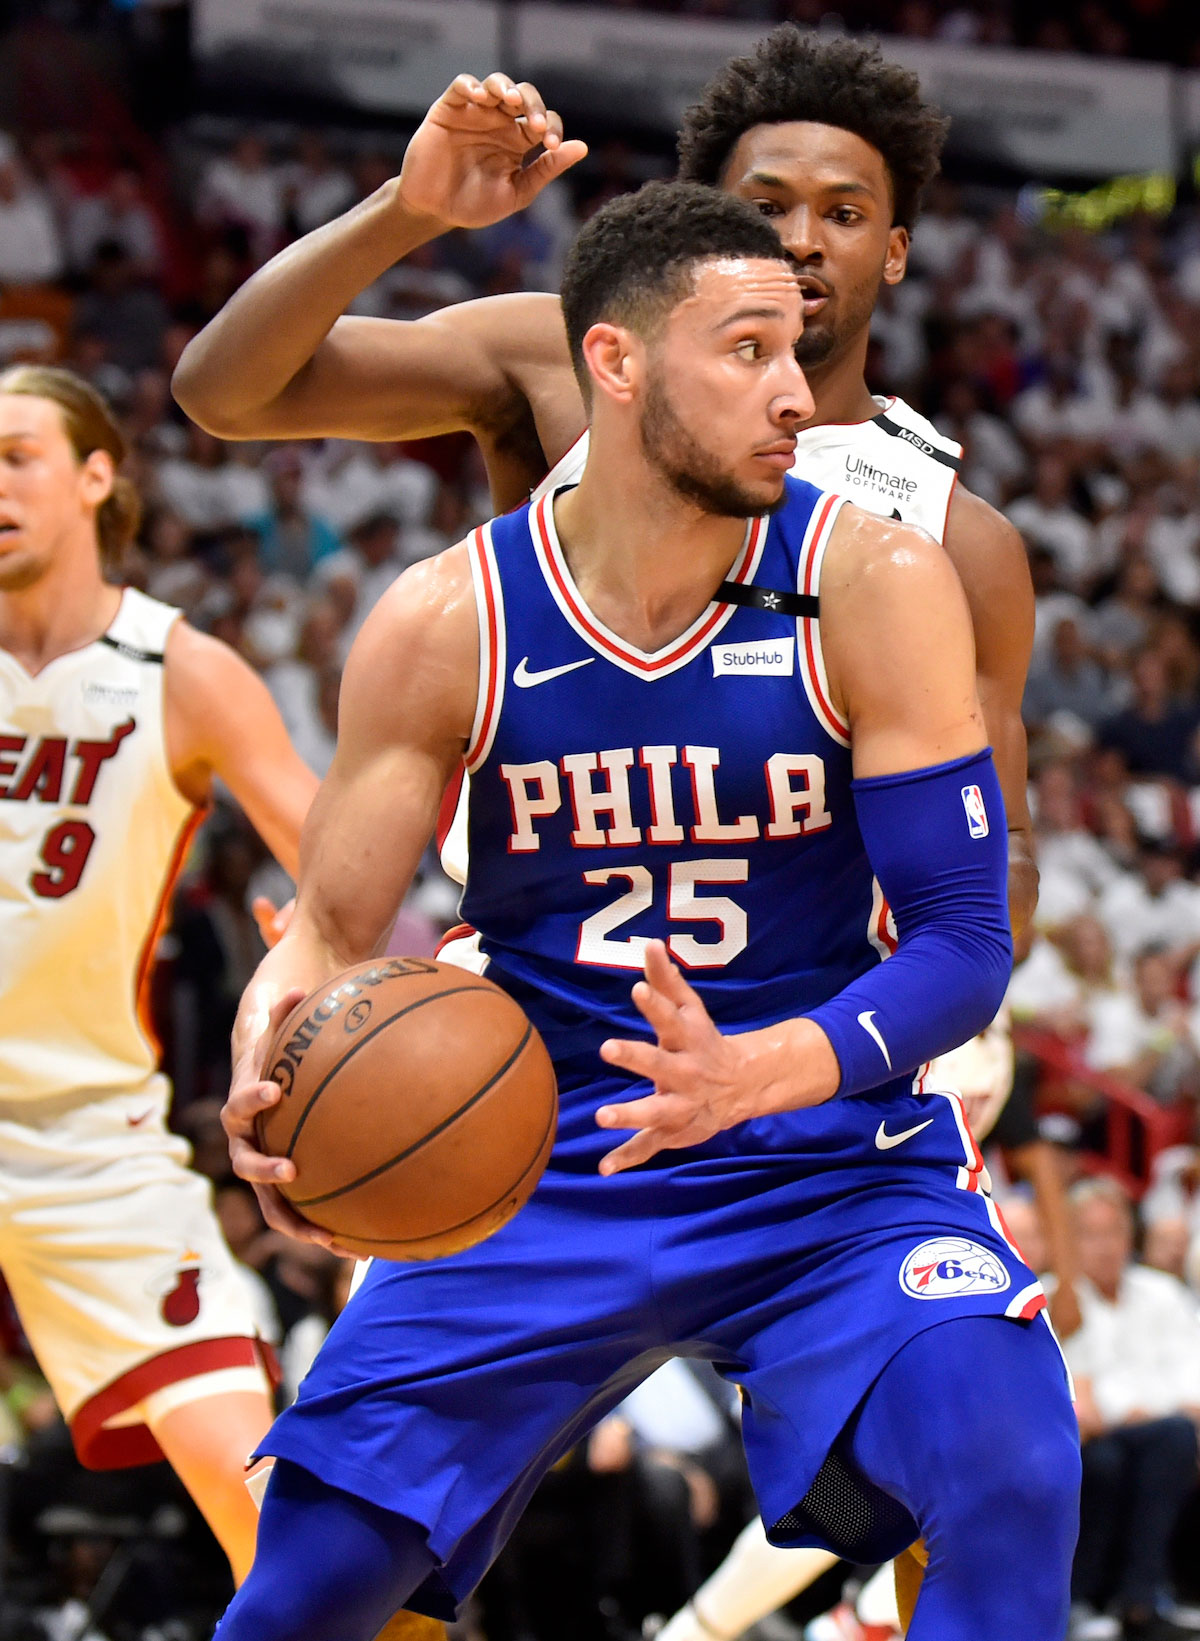 Ben Simmons #25 of the Philadelphia 76ers looks to pass the ball while being defended by Justise Winslow #20 of the Miami Heat